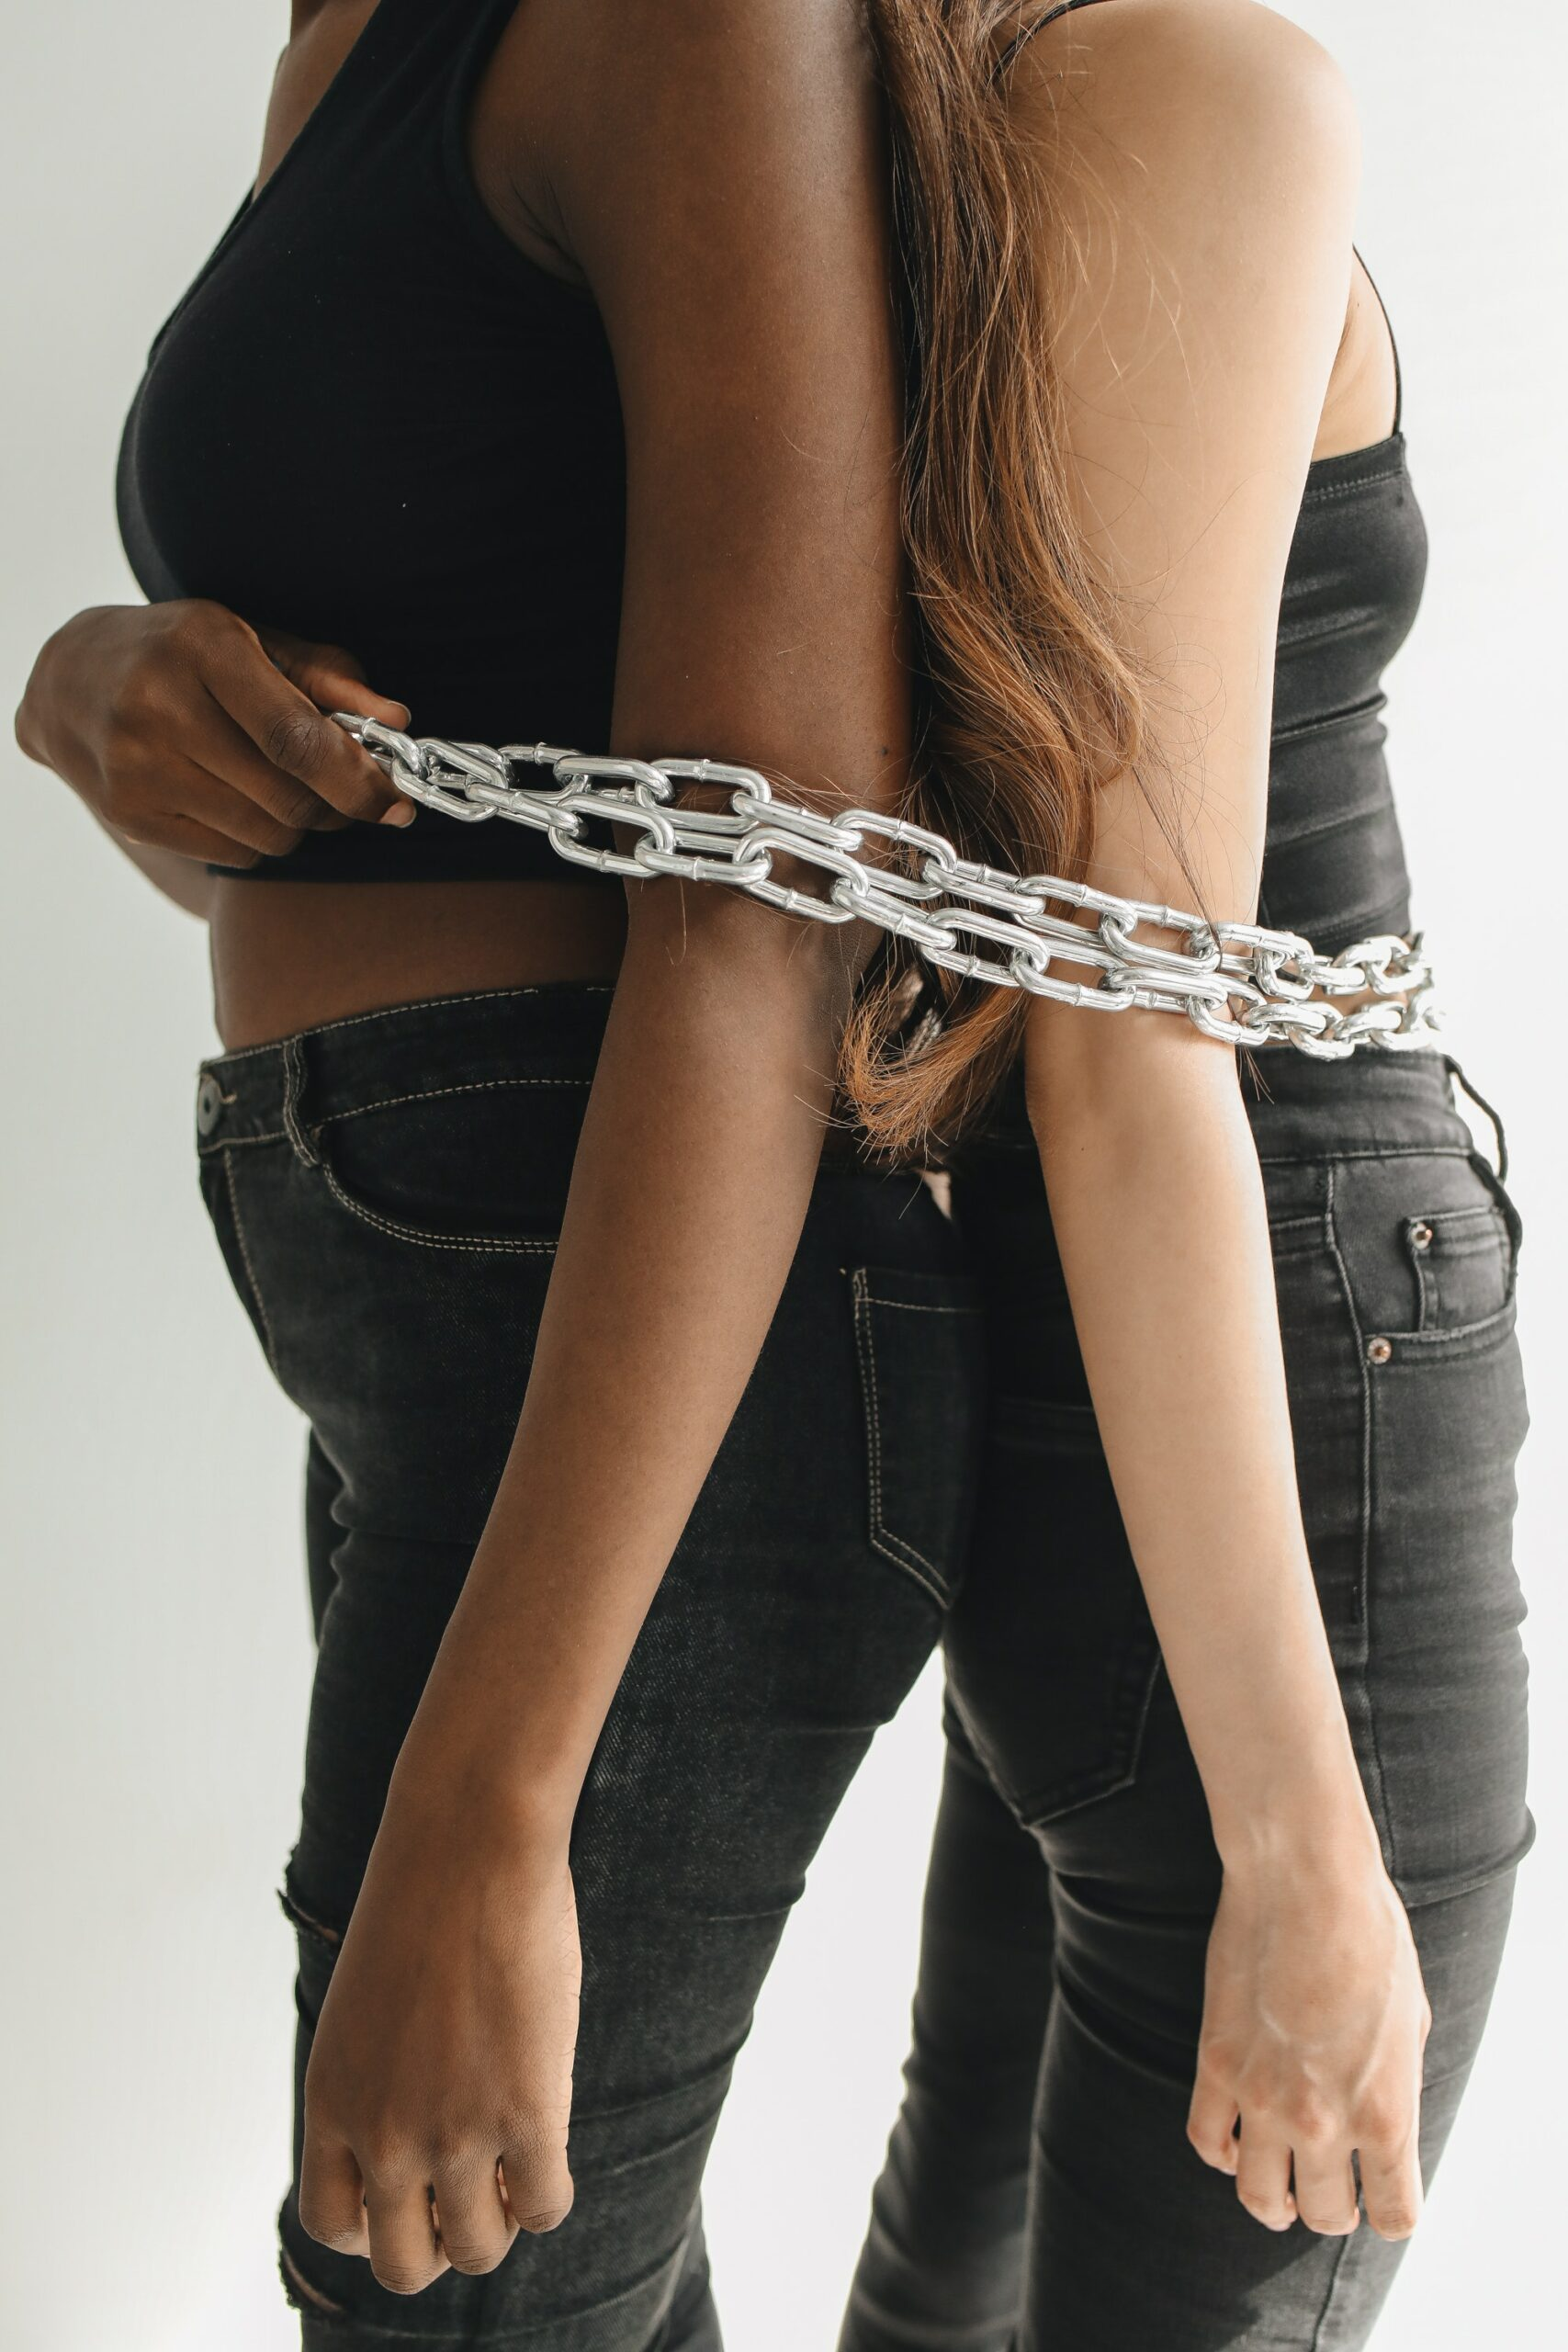 Report on Human Trafficking in 2020 released on 1st of July 2021